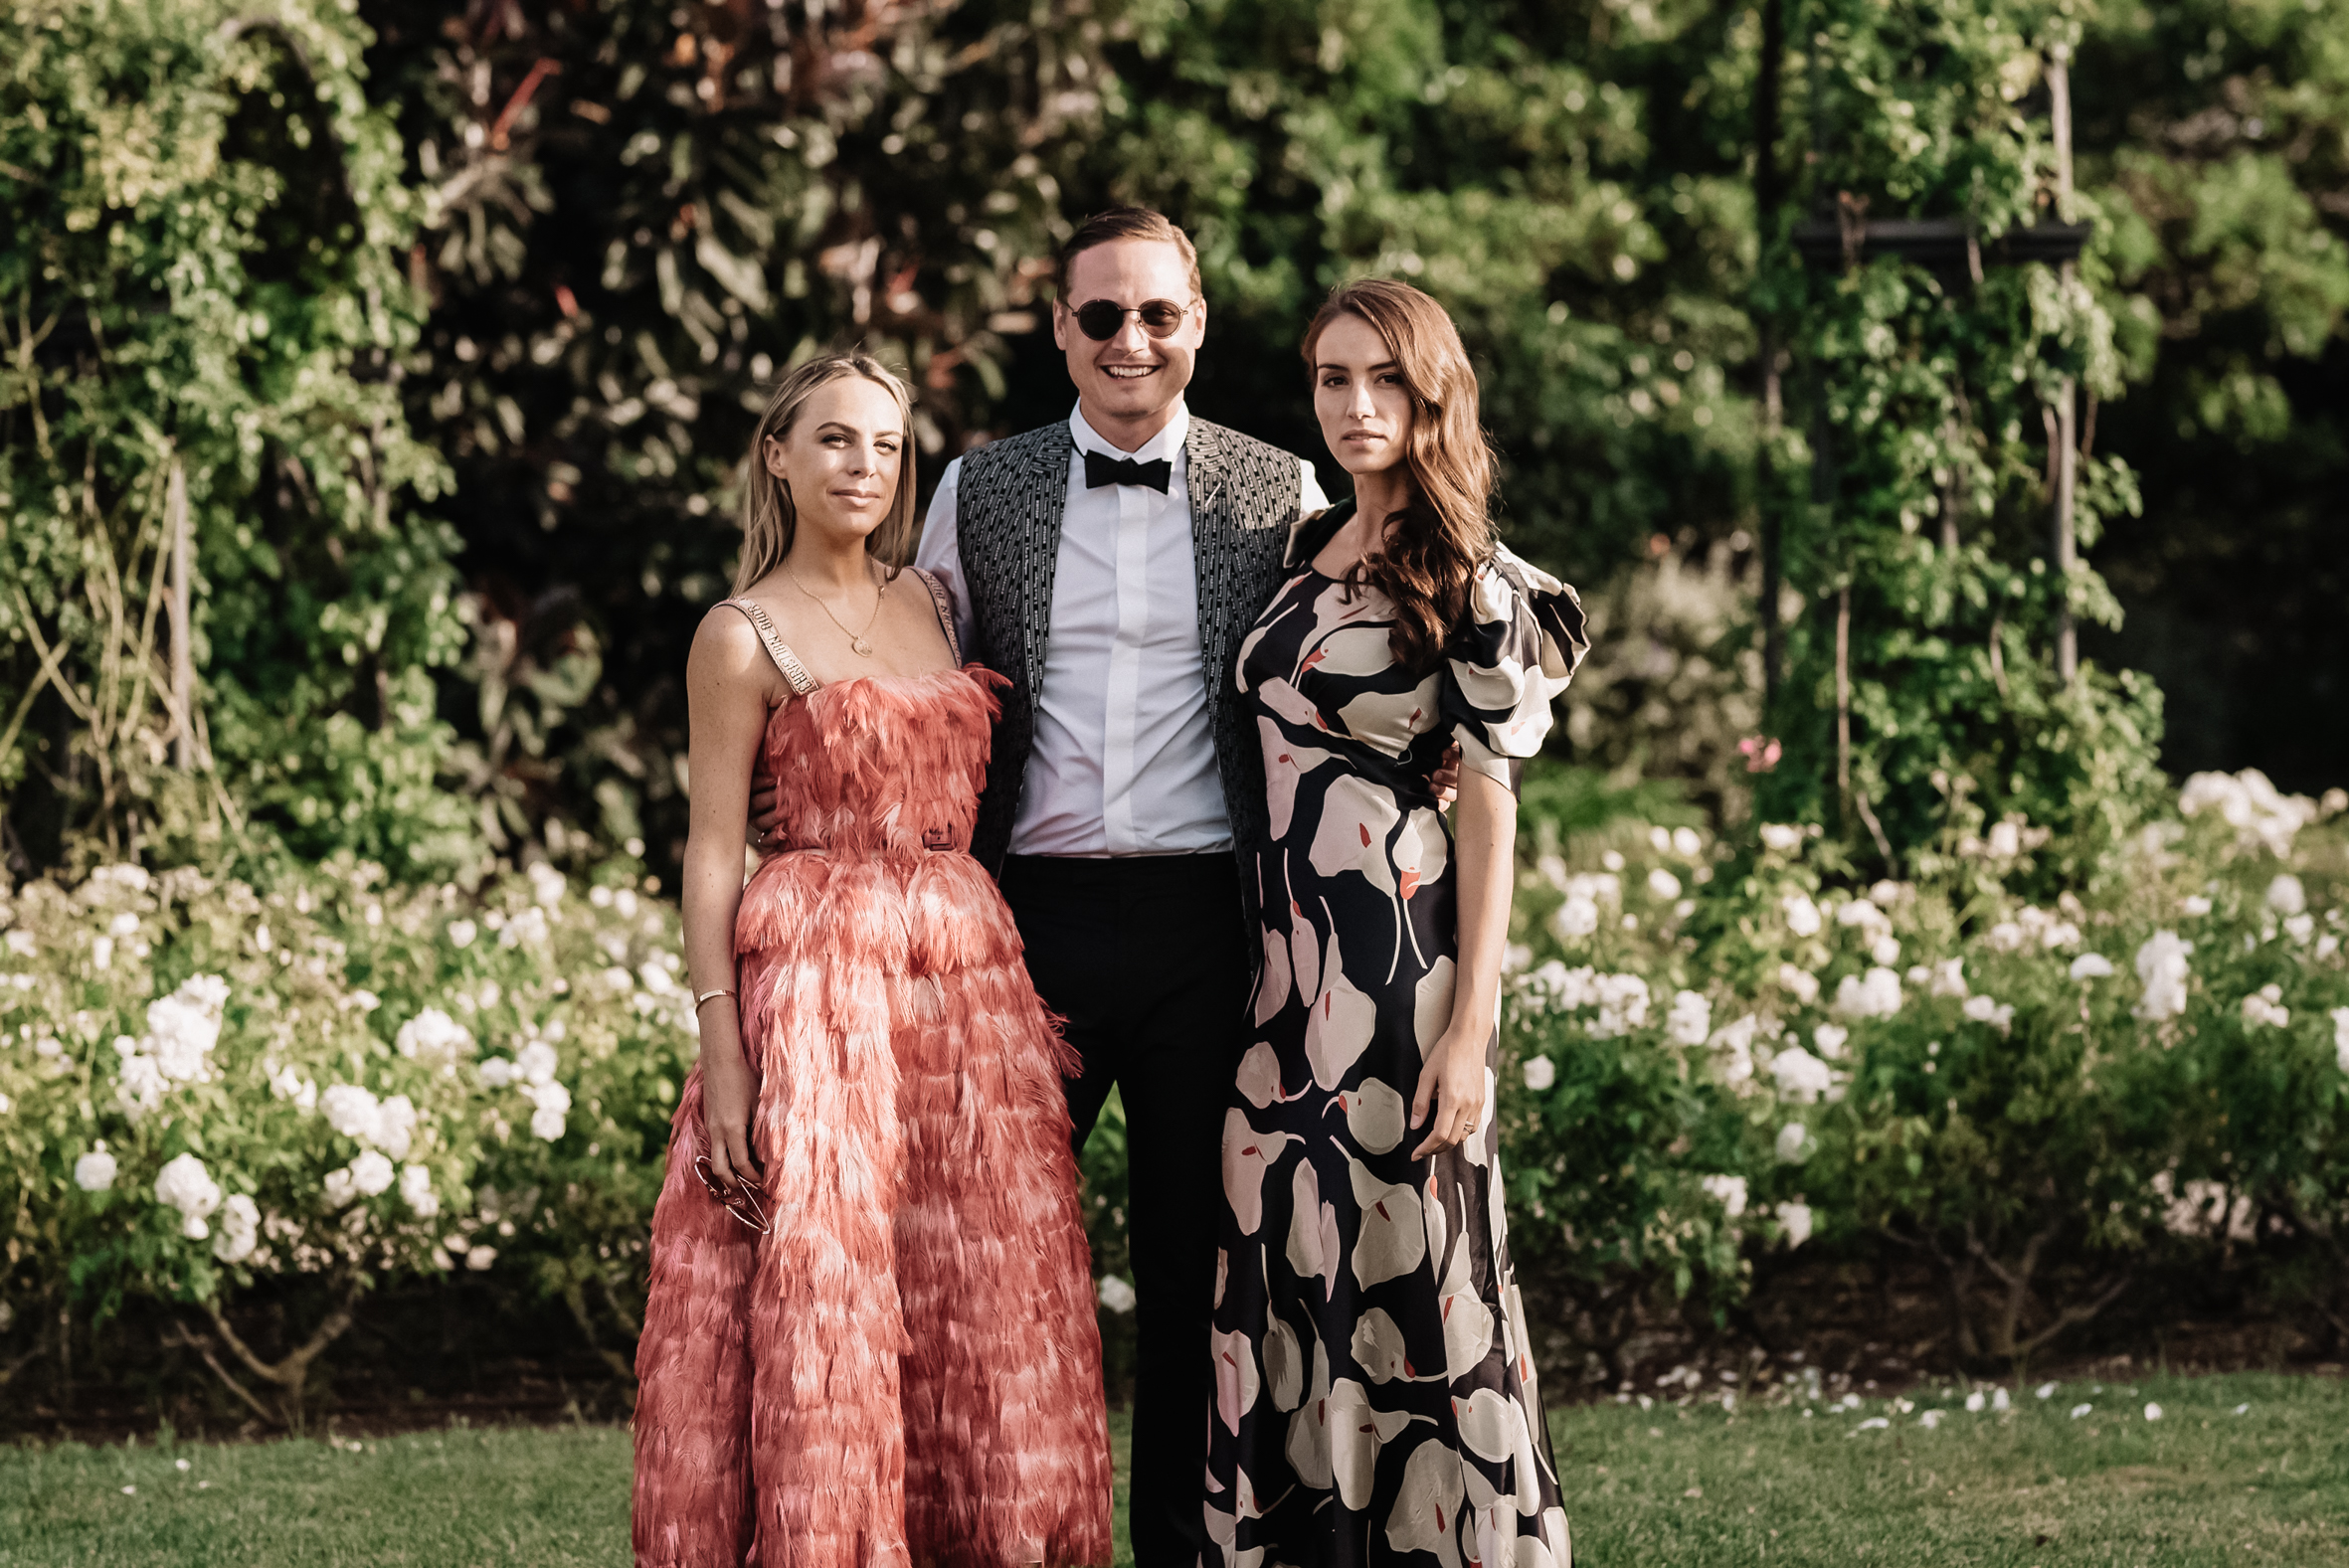 Chloe pictured at Morgan Curtis's wedding with Laurence Chandler and Taylor Olson.